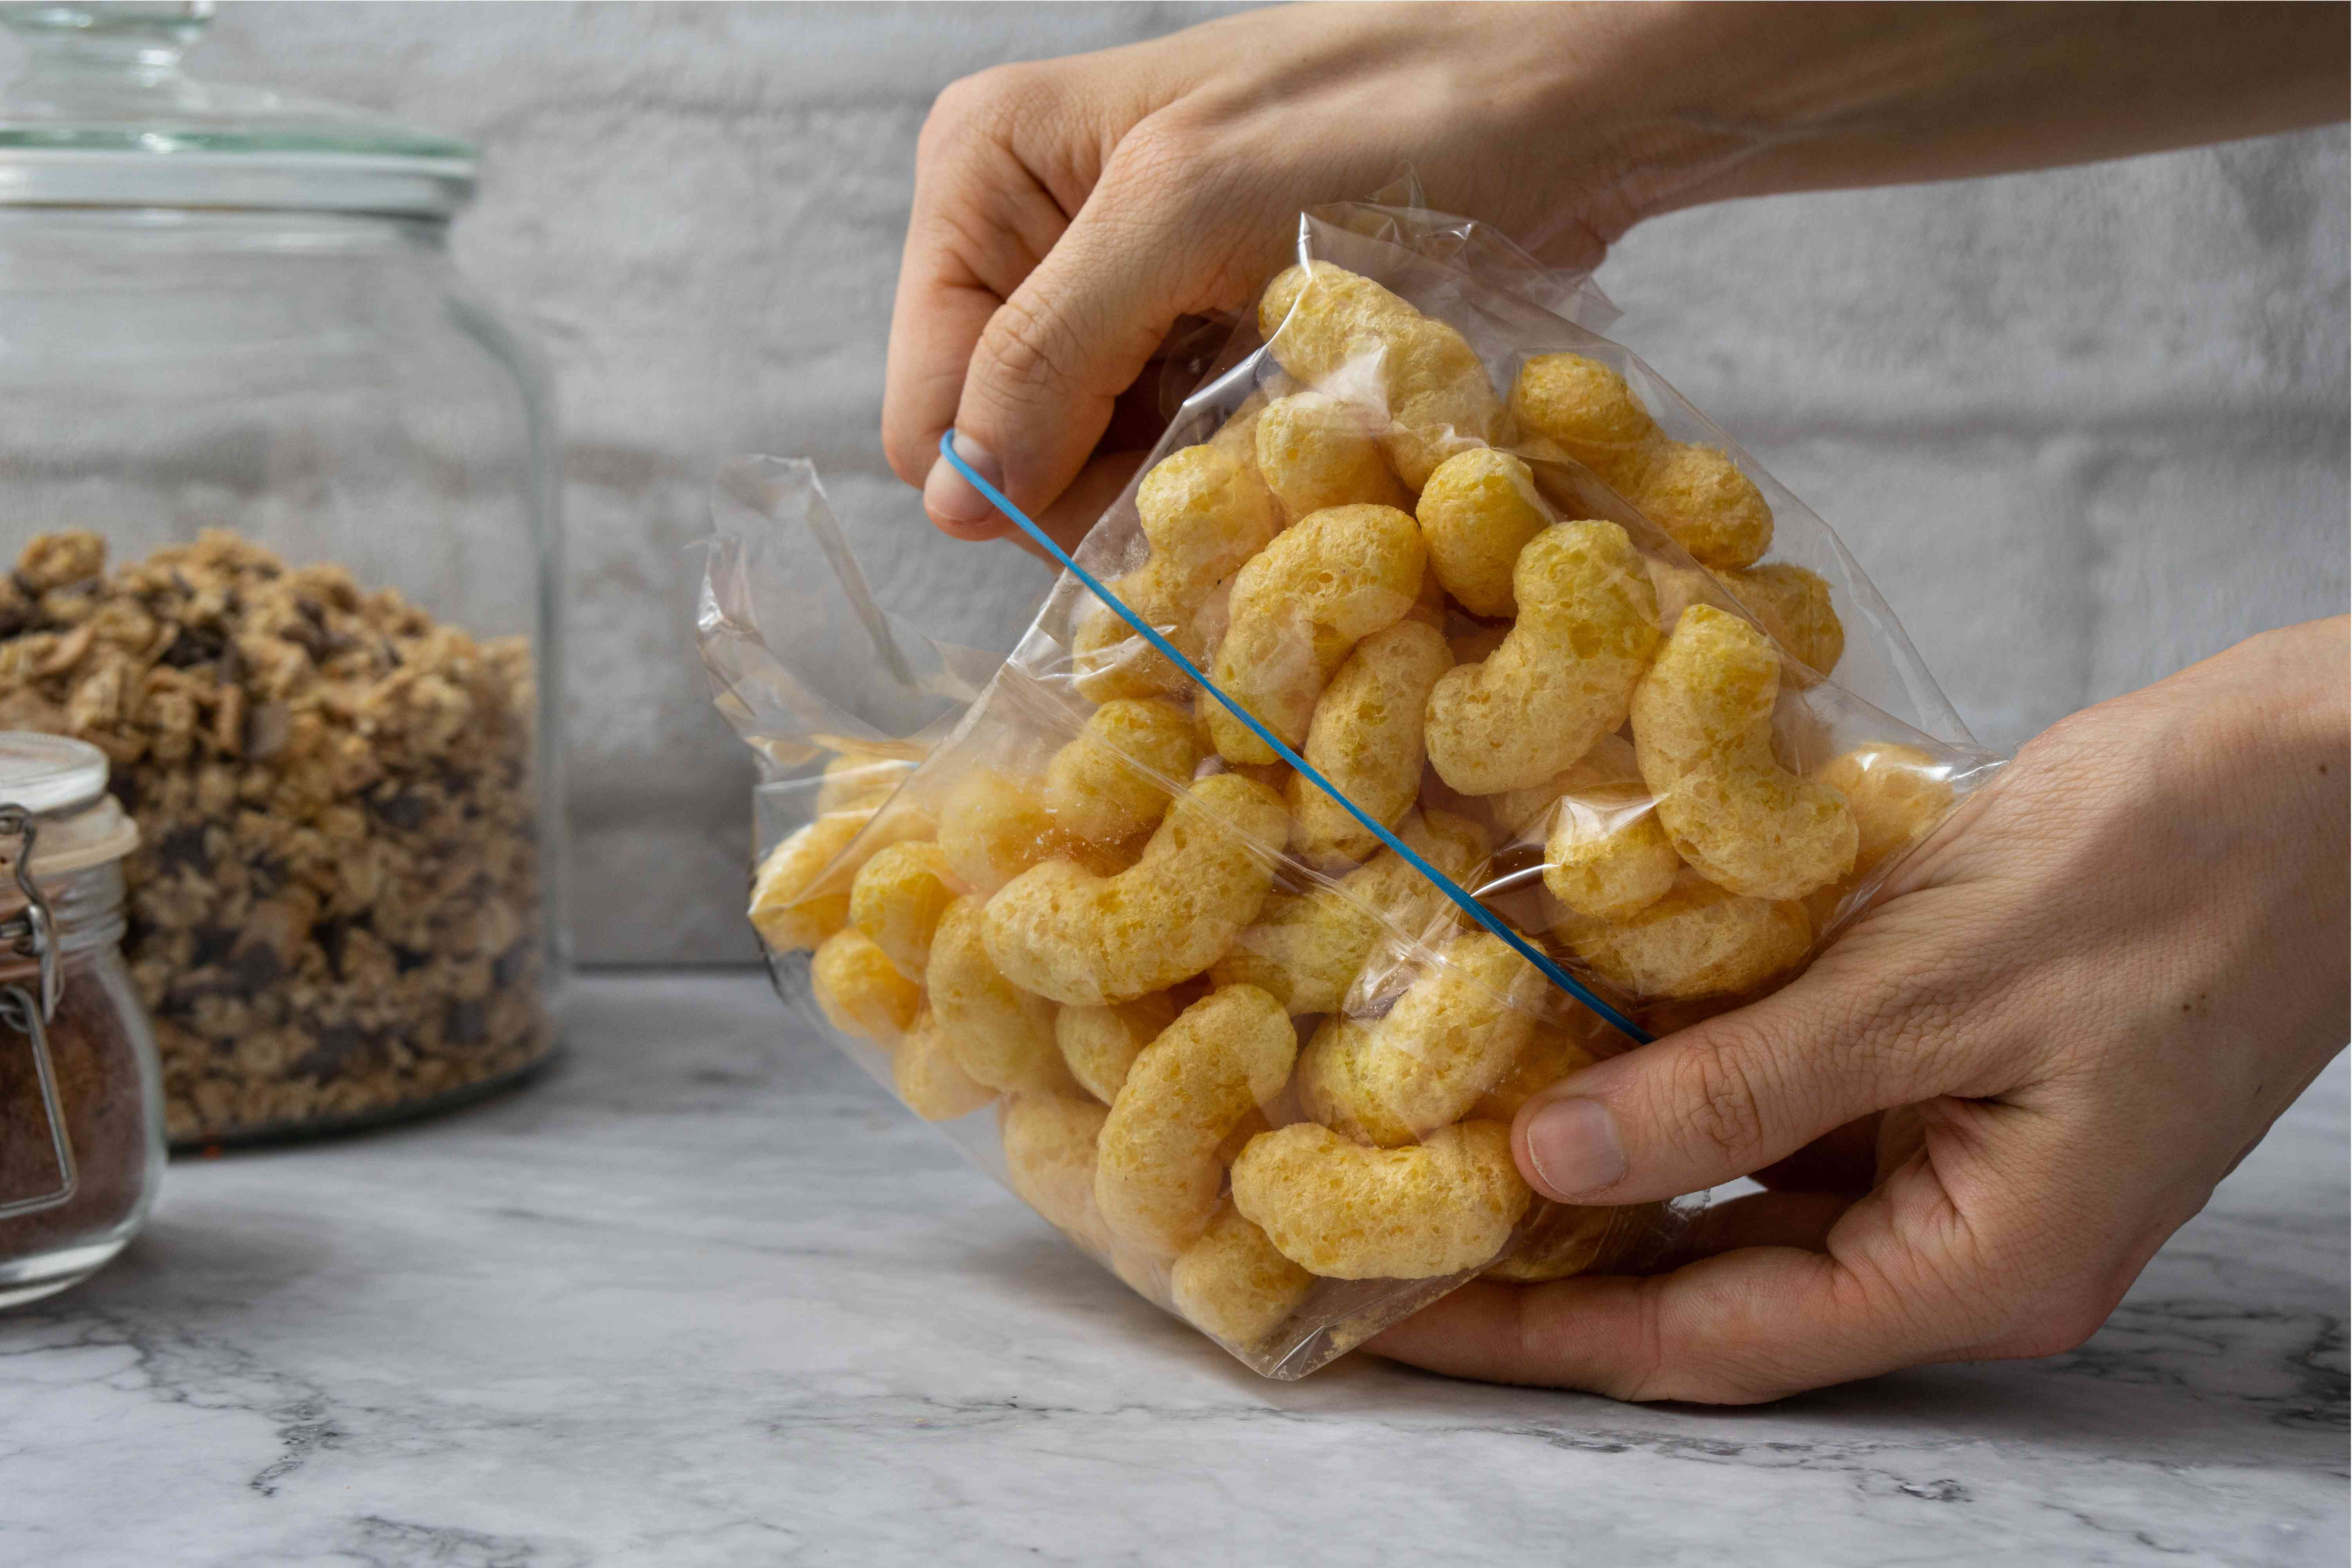 hands seal bag of puffs with rubber band